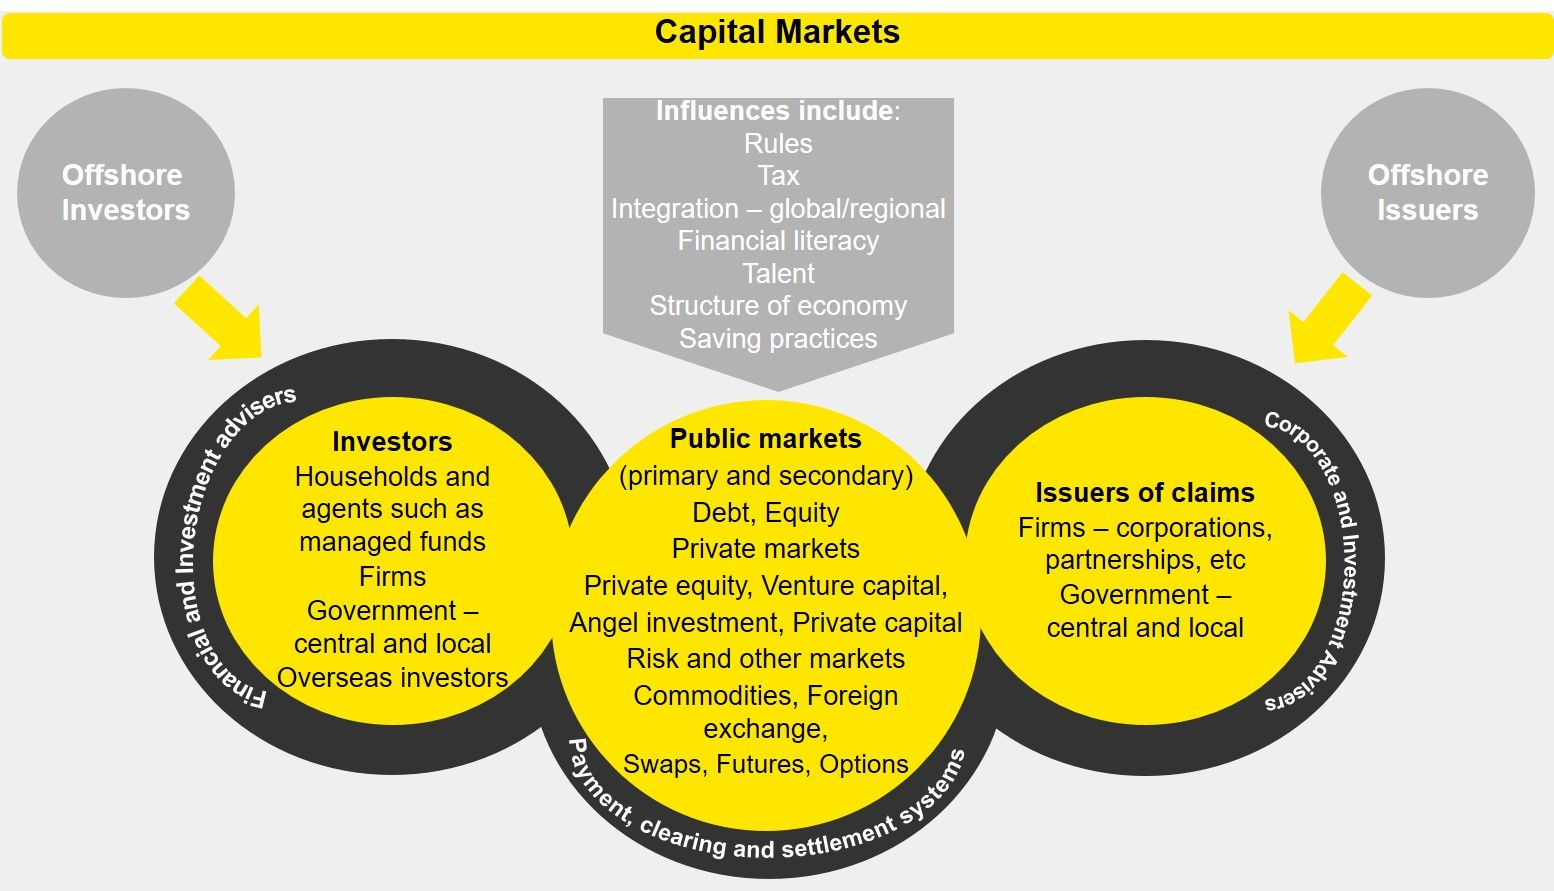 EY - Capital Markets 2029: Have your say